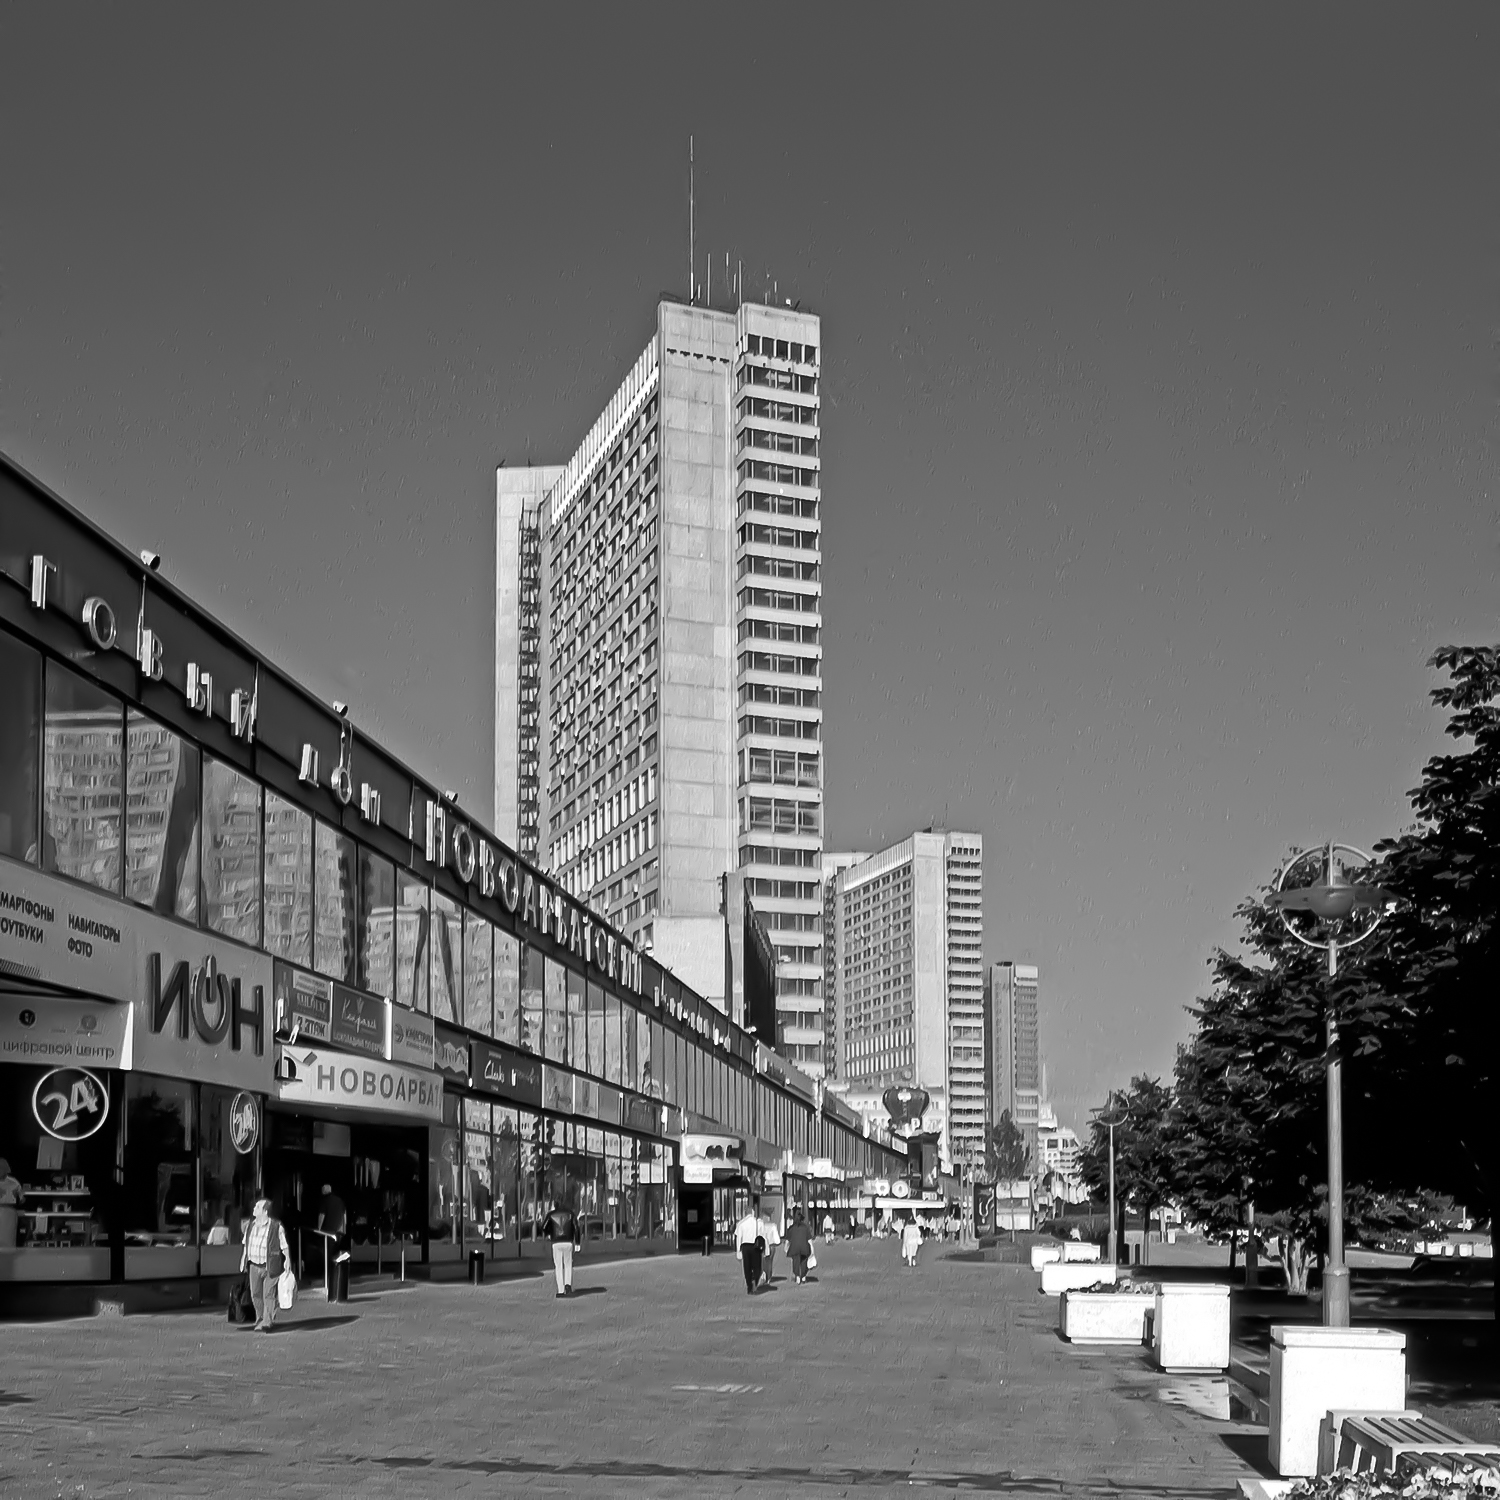 Moscow_10 (1 of 1).jpg